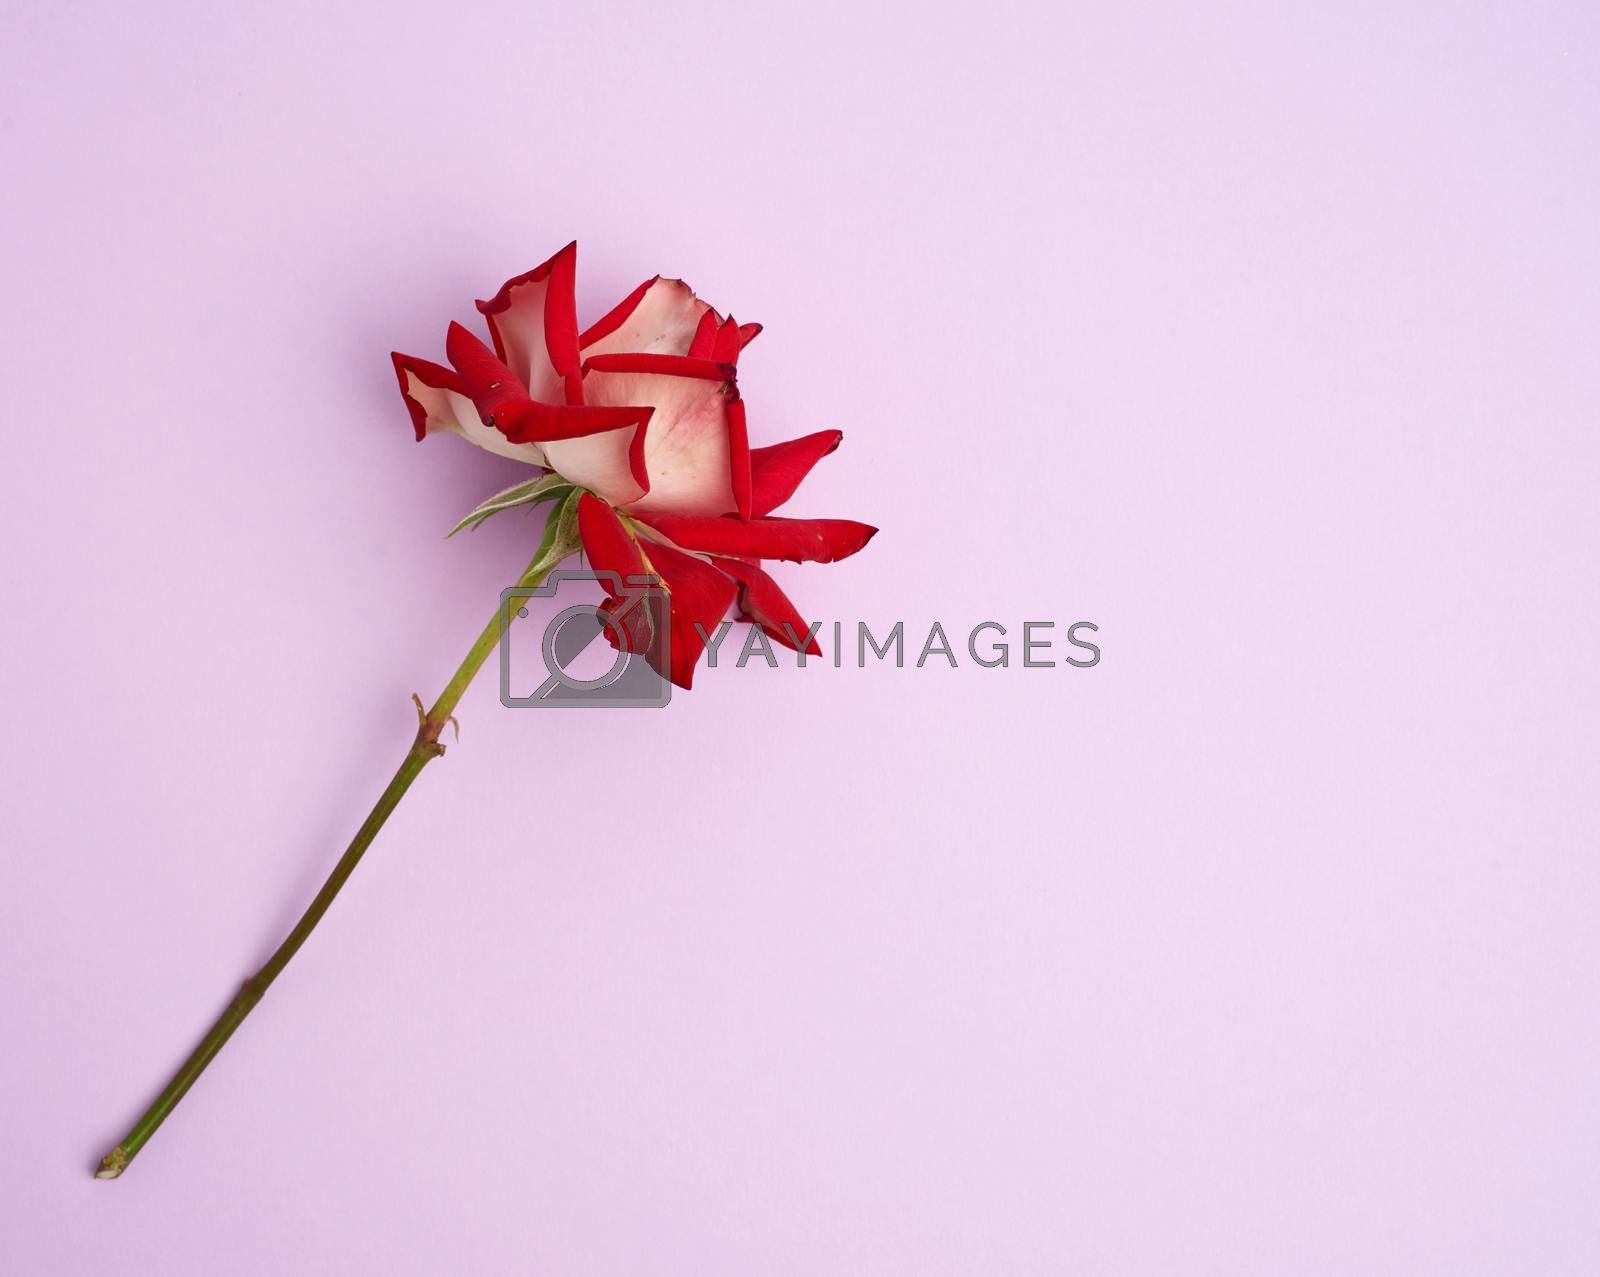 blooming red rose with green leaves on a purple background by ndanko